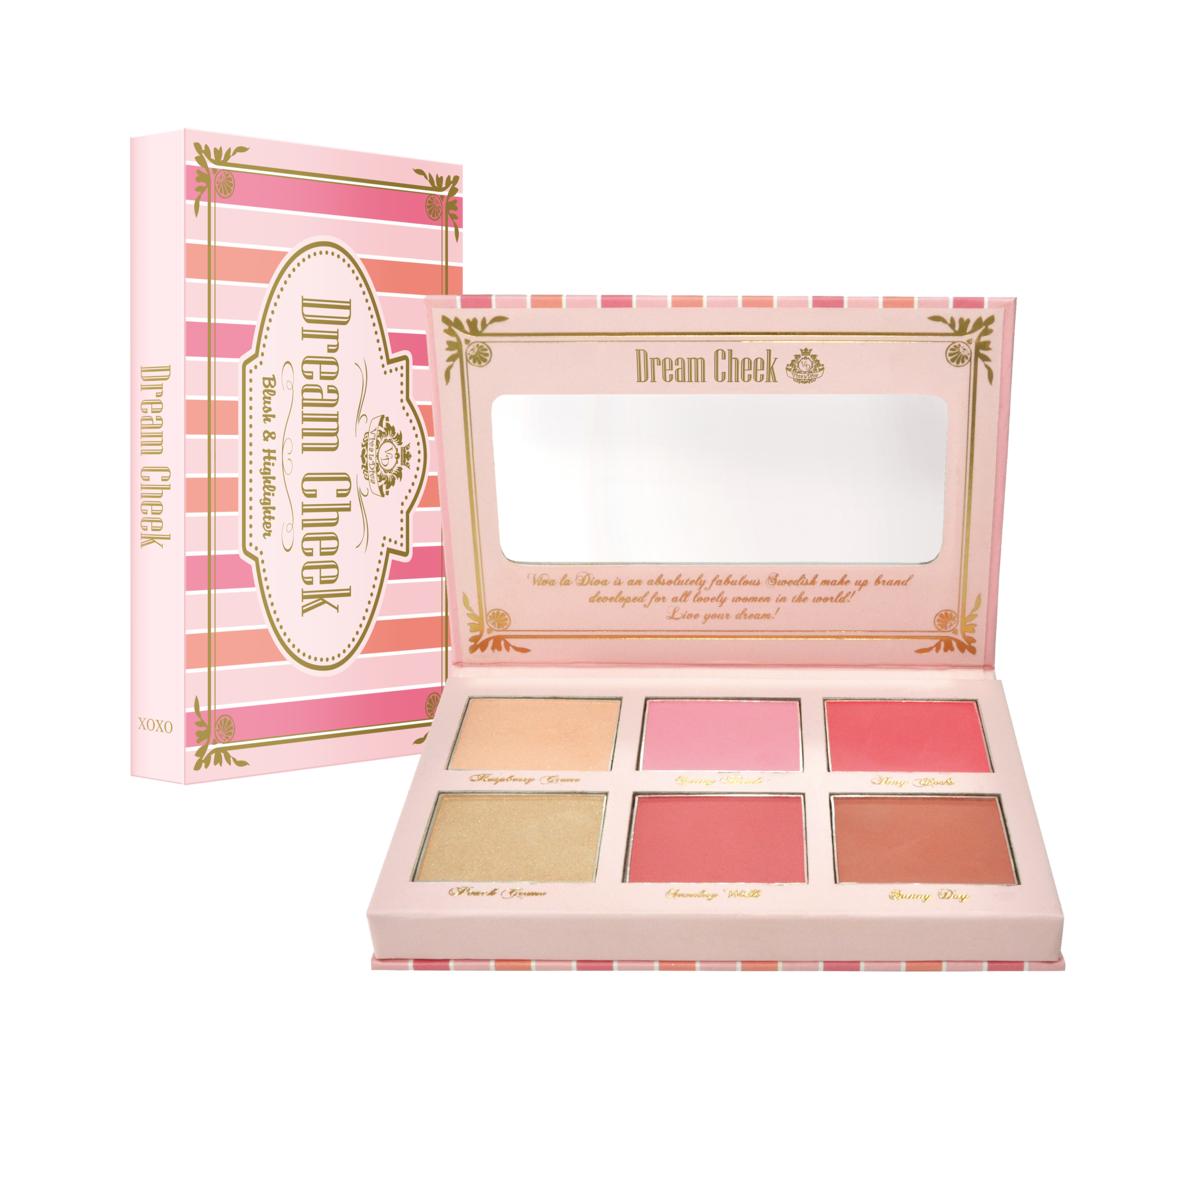 Dream cheek blush kit VIVA LA DIVA